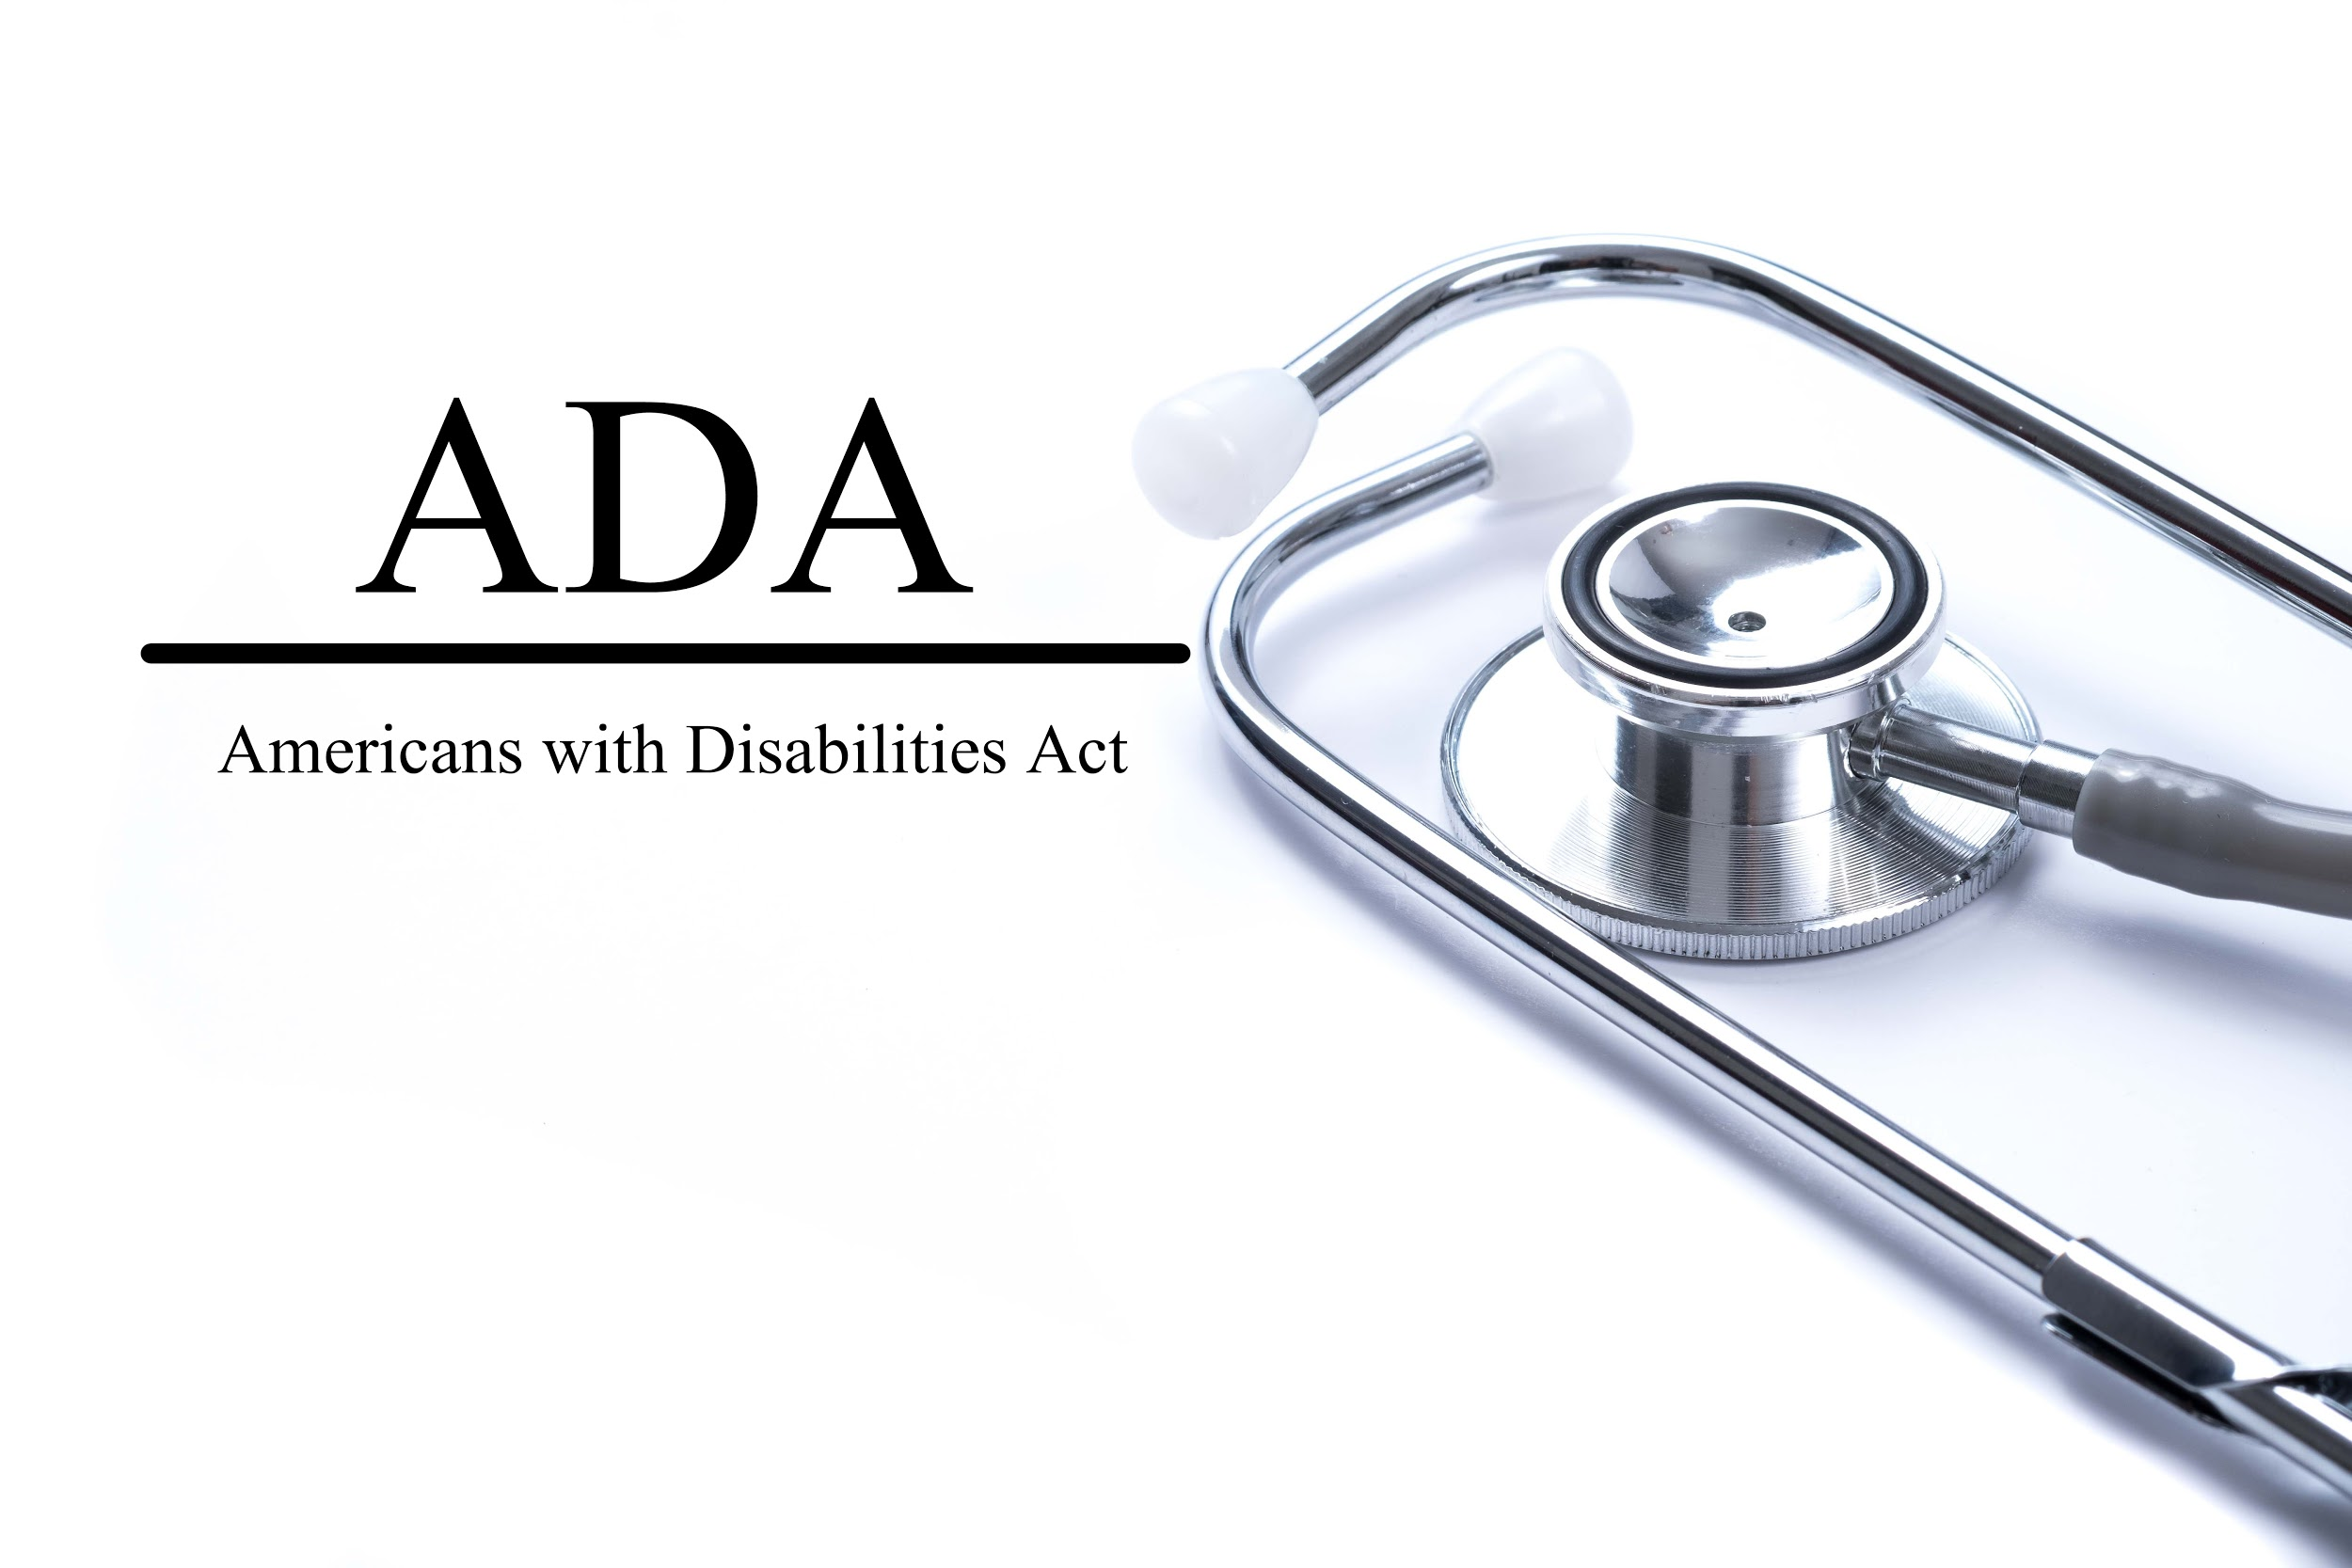 Page with ADA (Americans with Disabilities Act) on the table with stethoscope